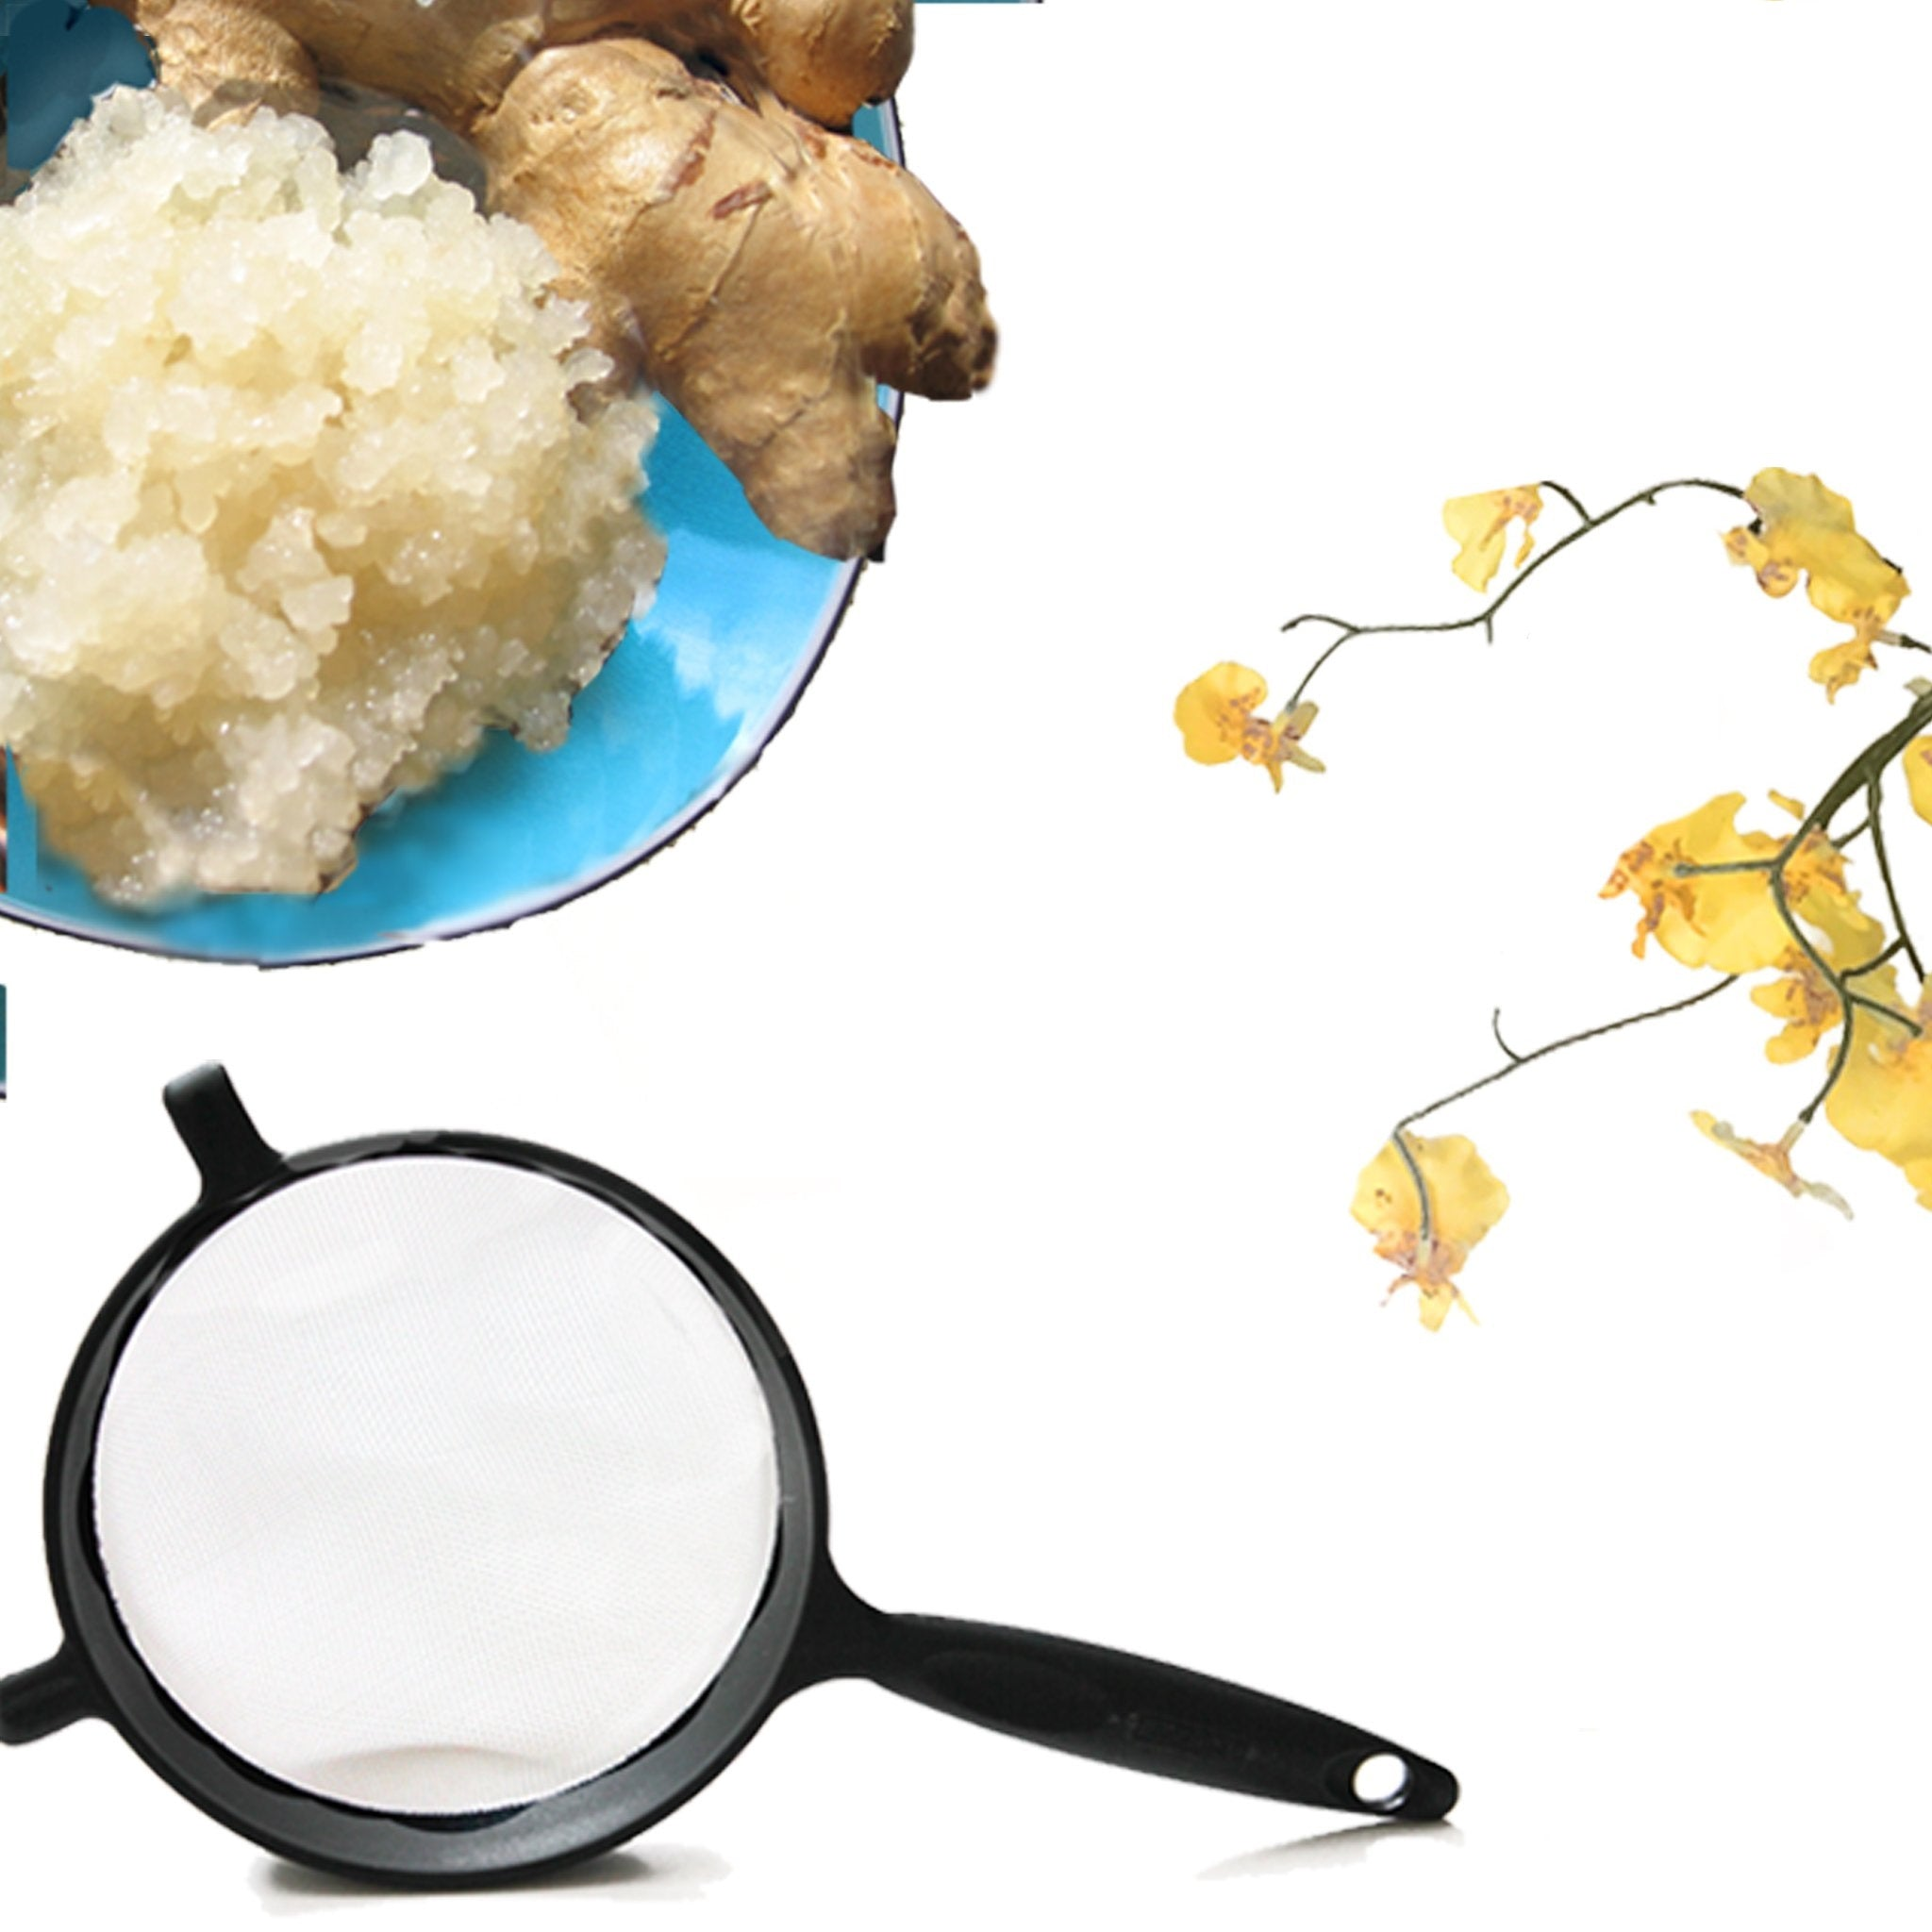 Live Ginger Beer Plant + Strainer set - Yemoos Nourishing Cultures